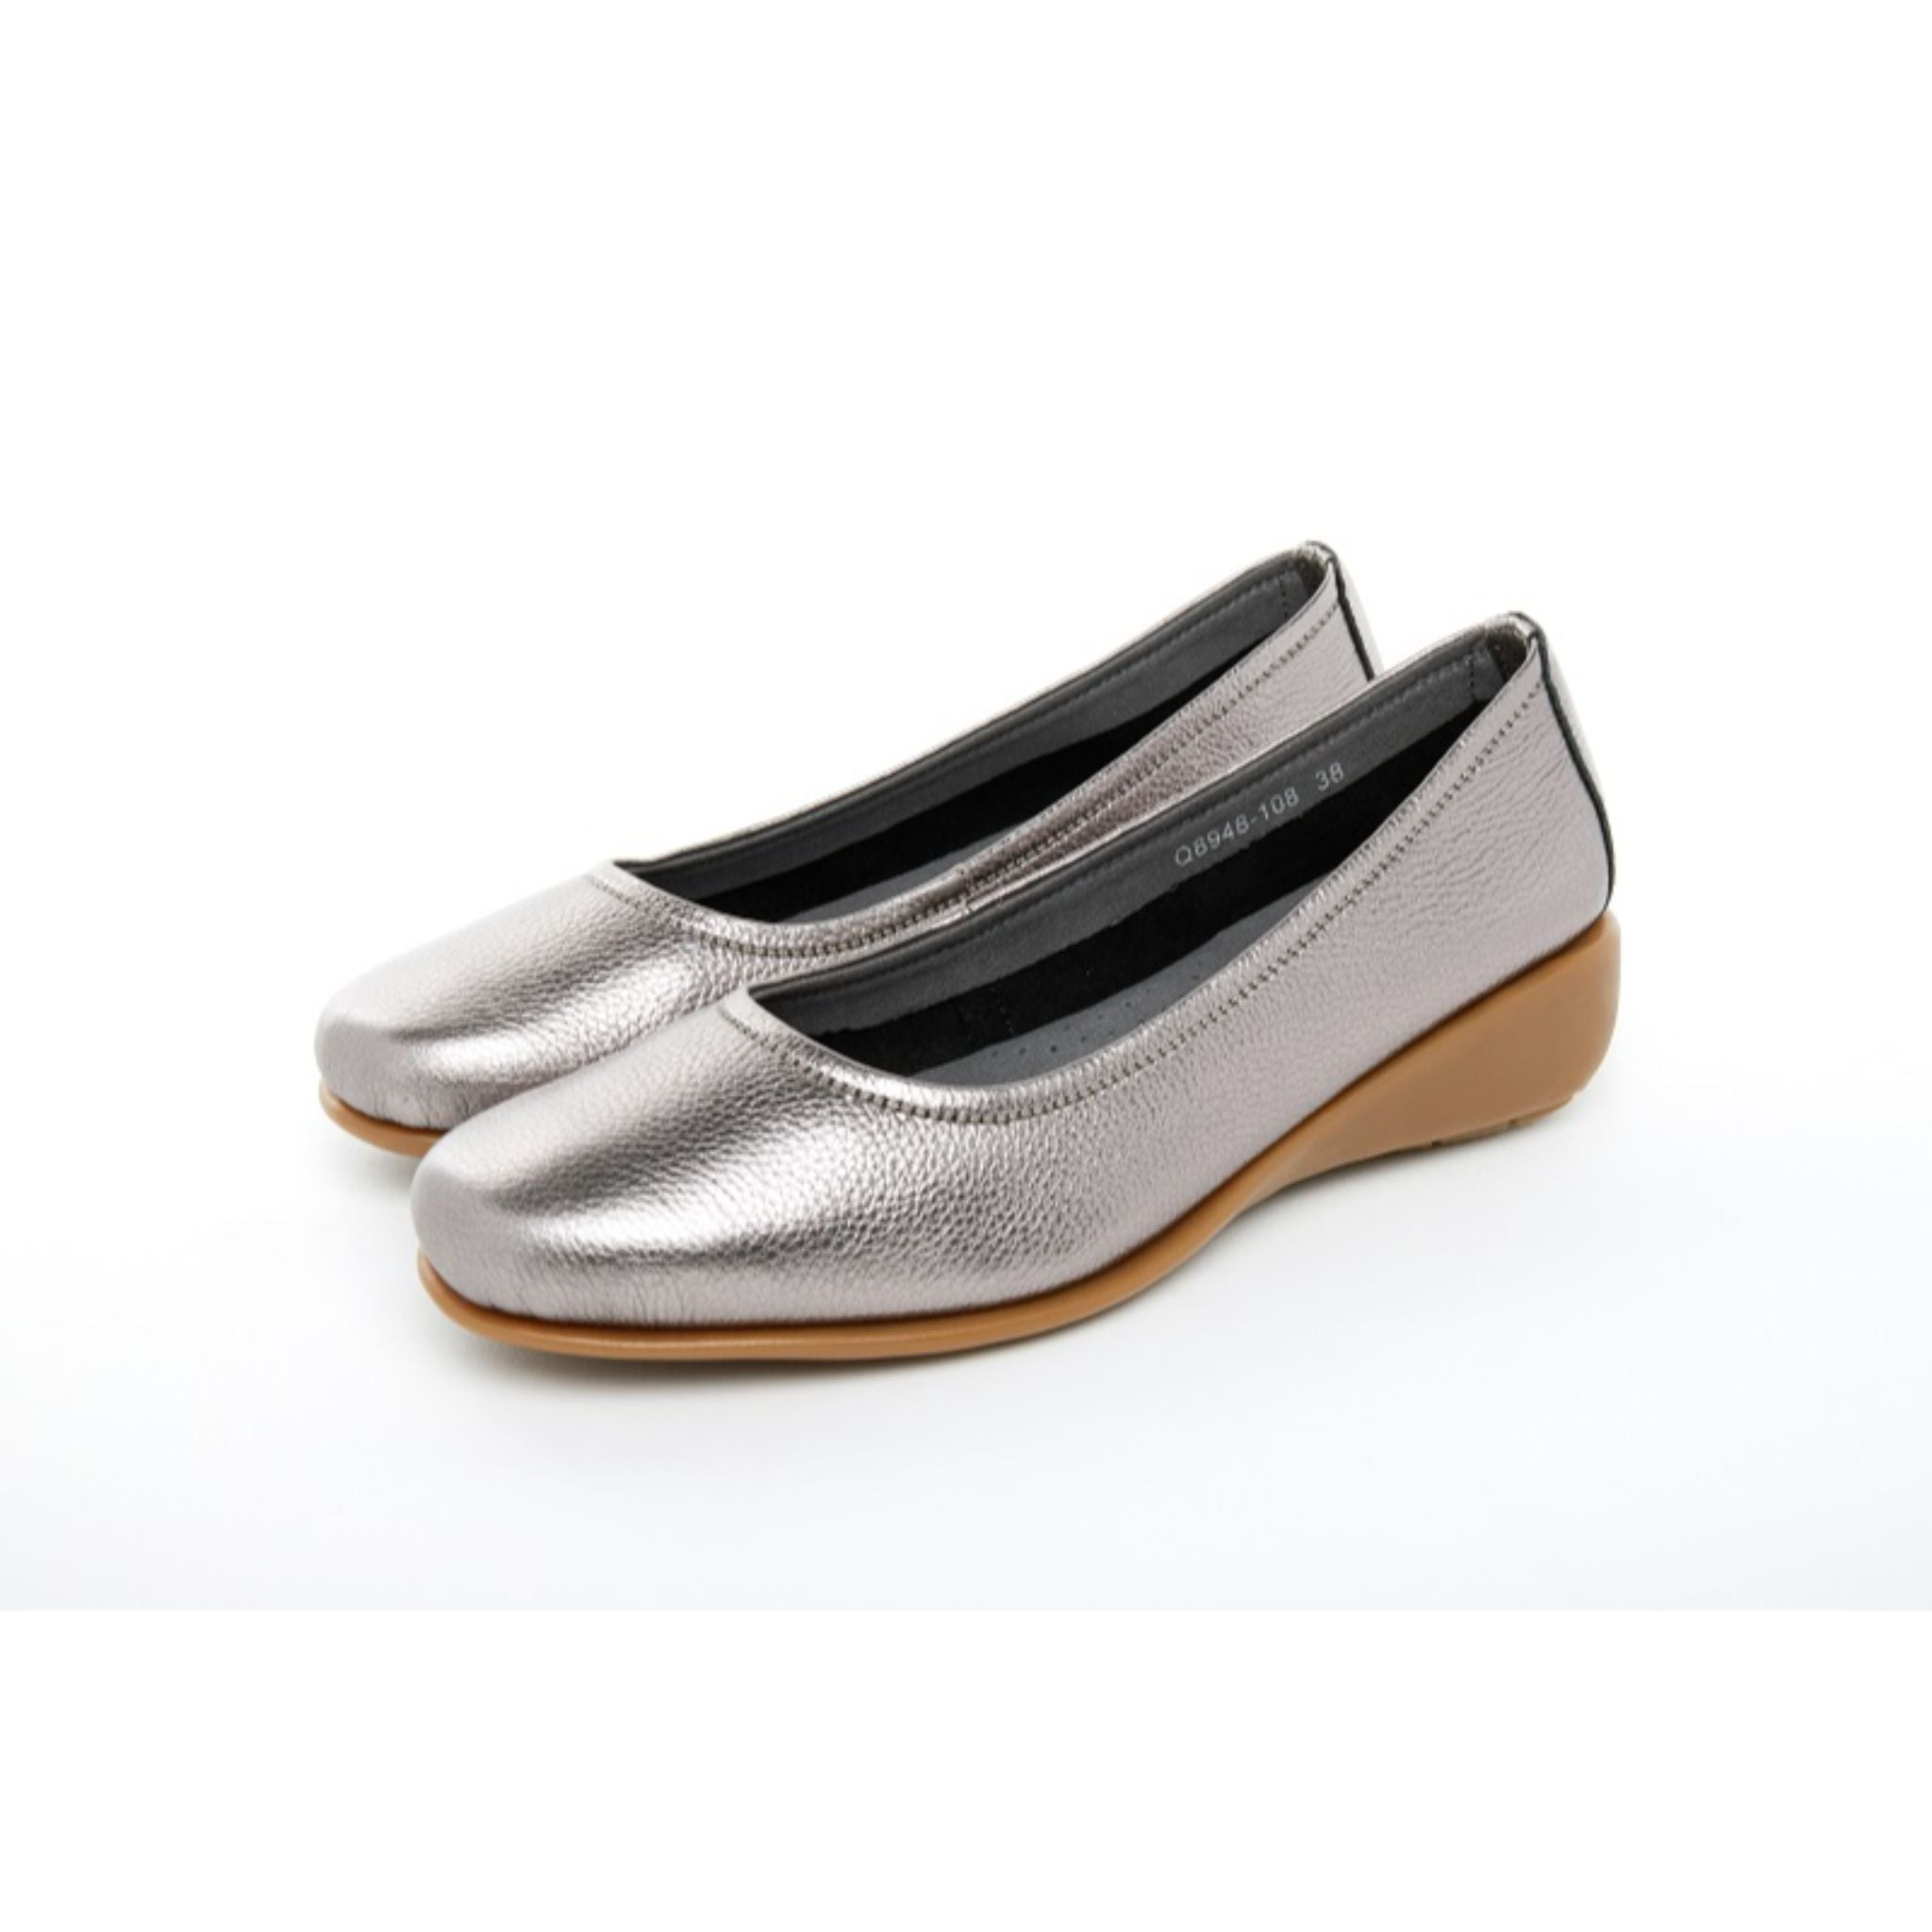 Barani Leather Pumps With Micro Wedge 8948-108 Silver